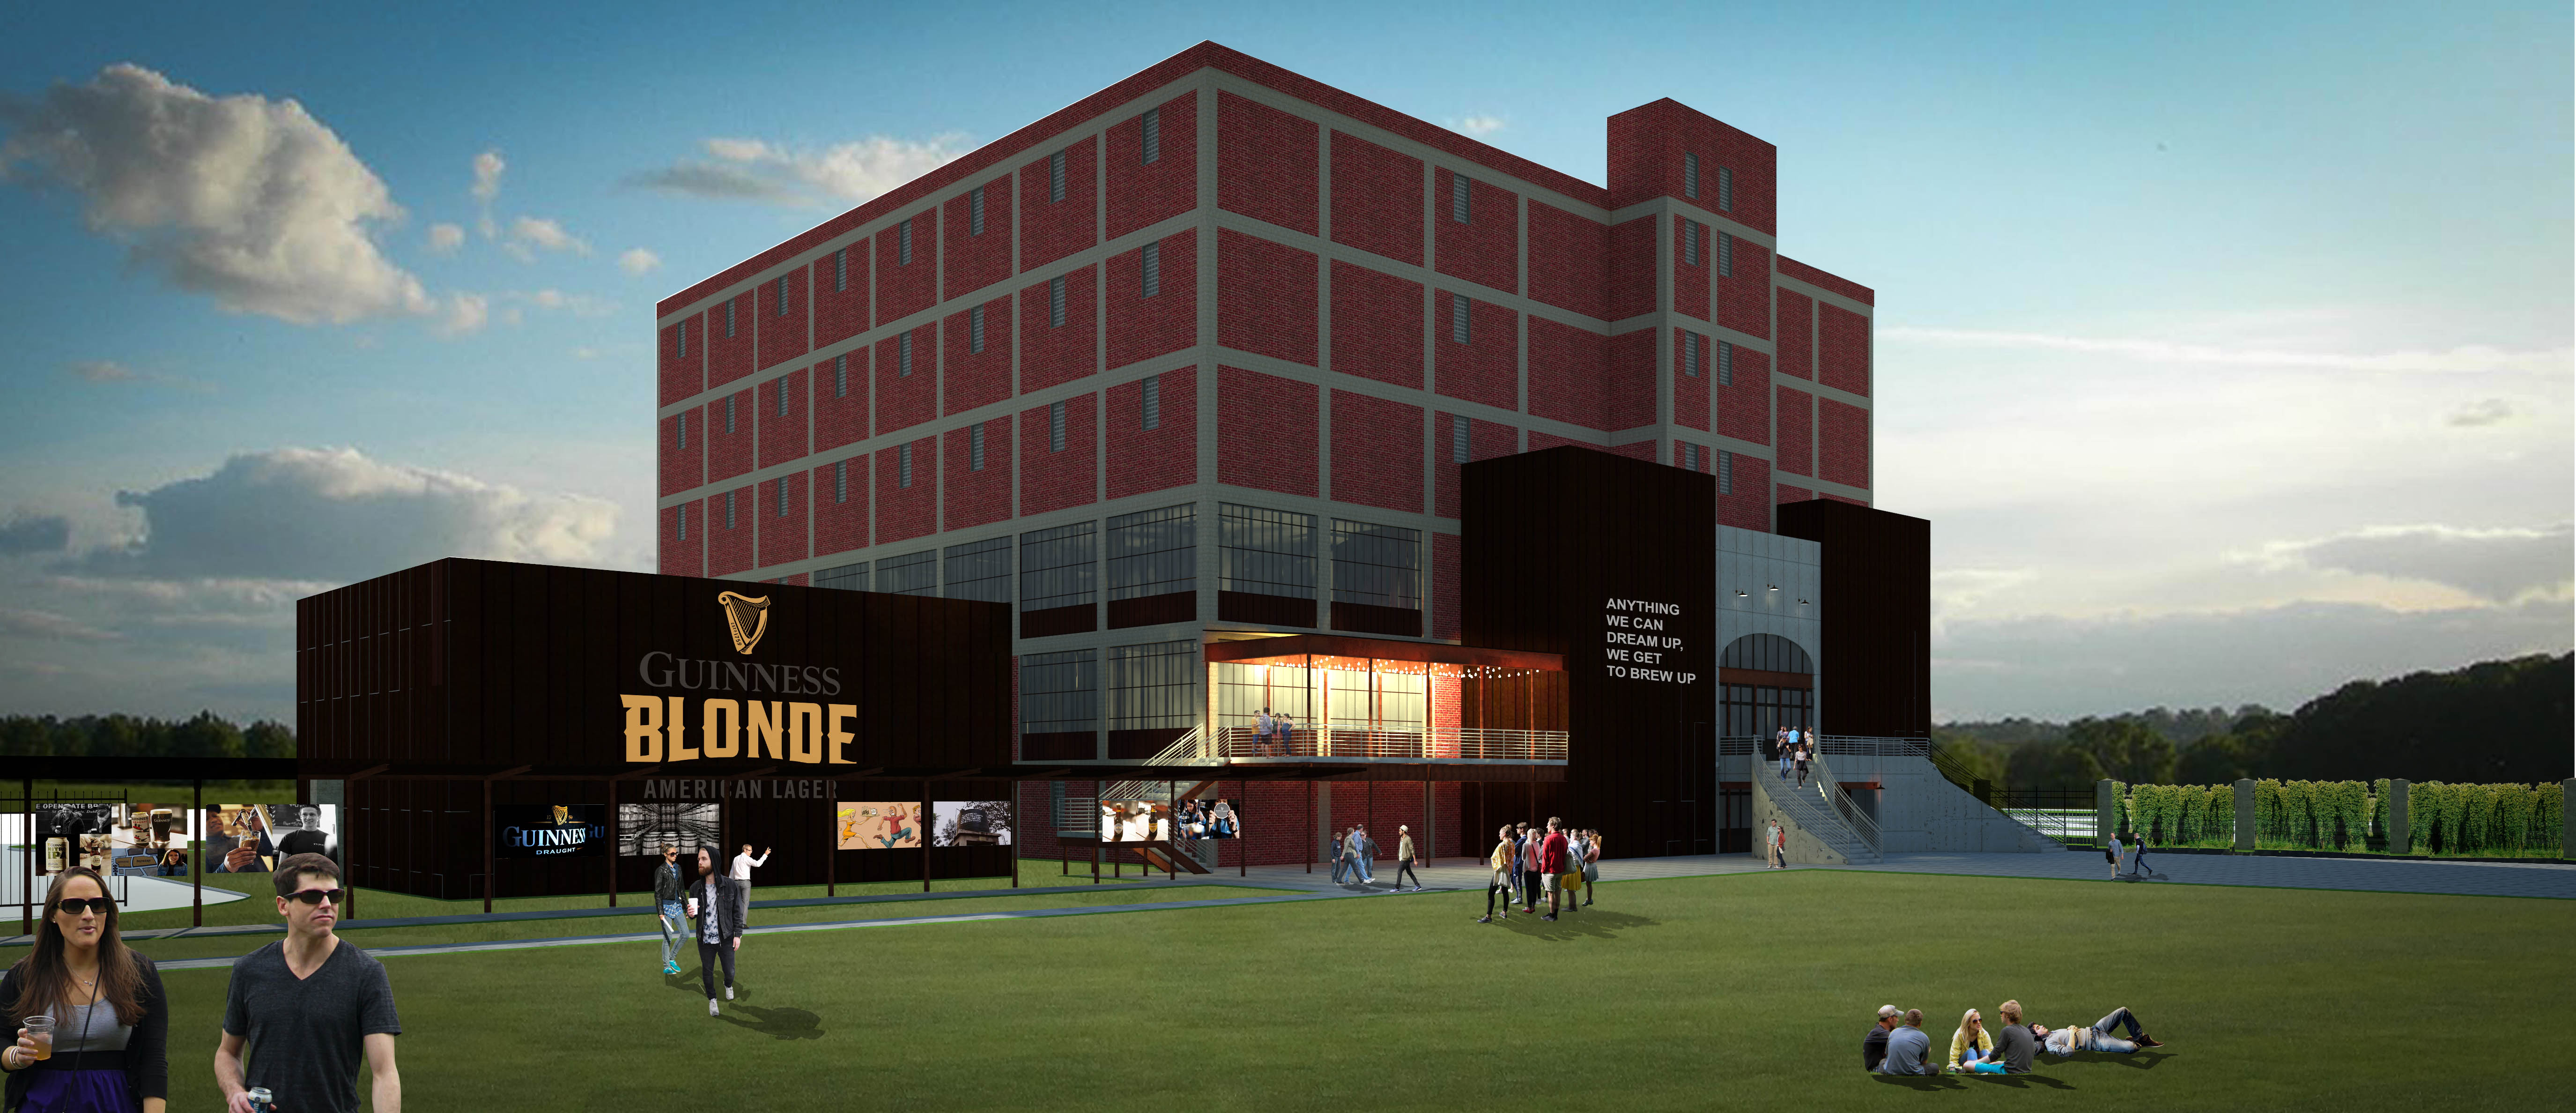 Diageo announced plans to build a US version of Dublin's Guinness Open Gate Brewery in Baltimore County, Maryland. A rendering of the brewery is shown above.